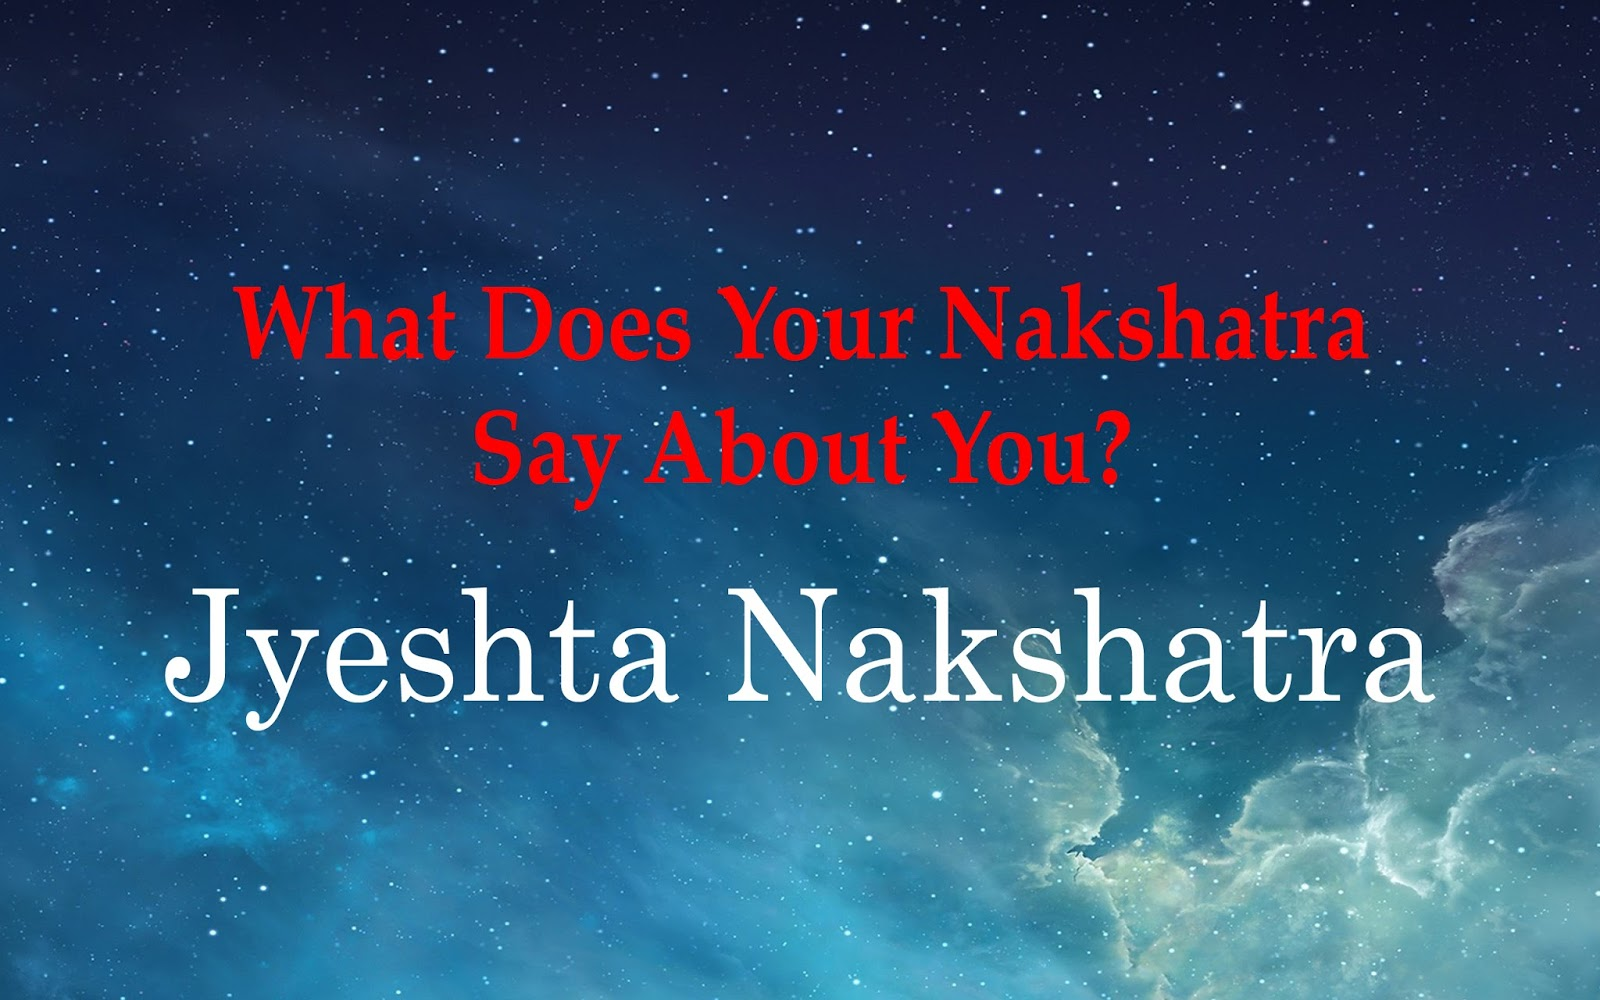 What Does Your Nakshatra Say About You? - Jyeshta Nakshatra - Vedic